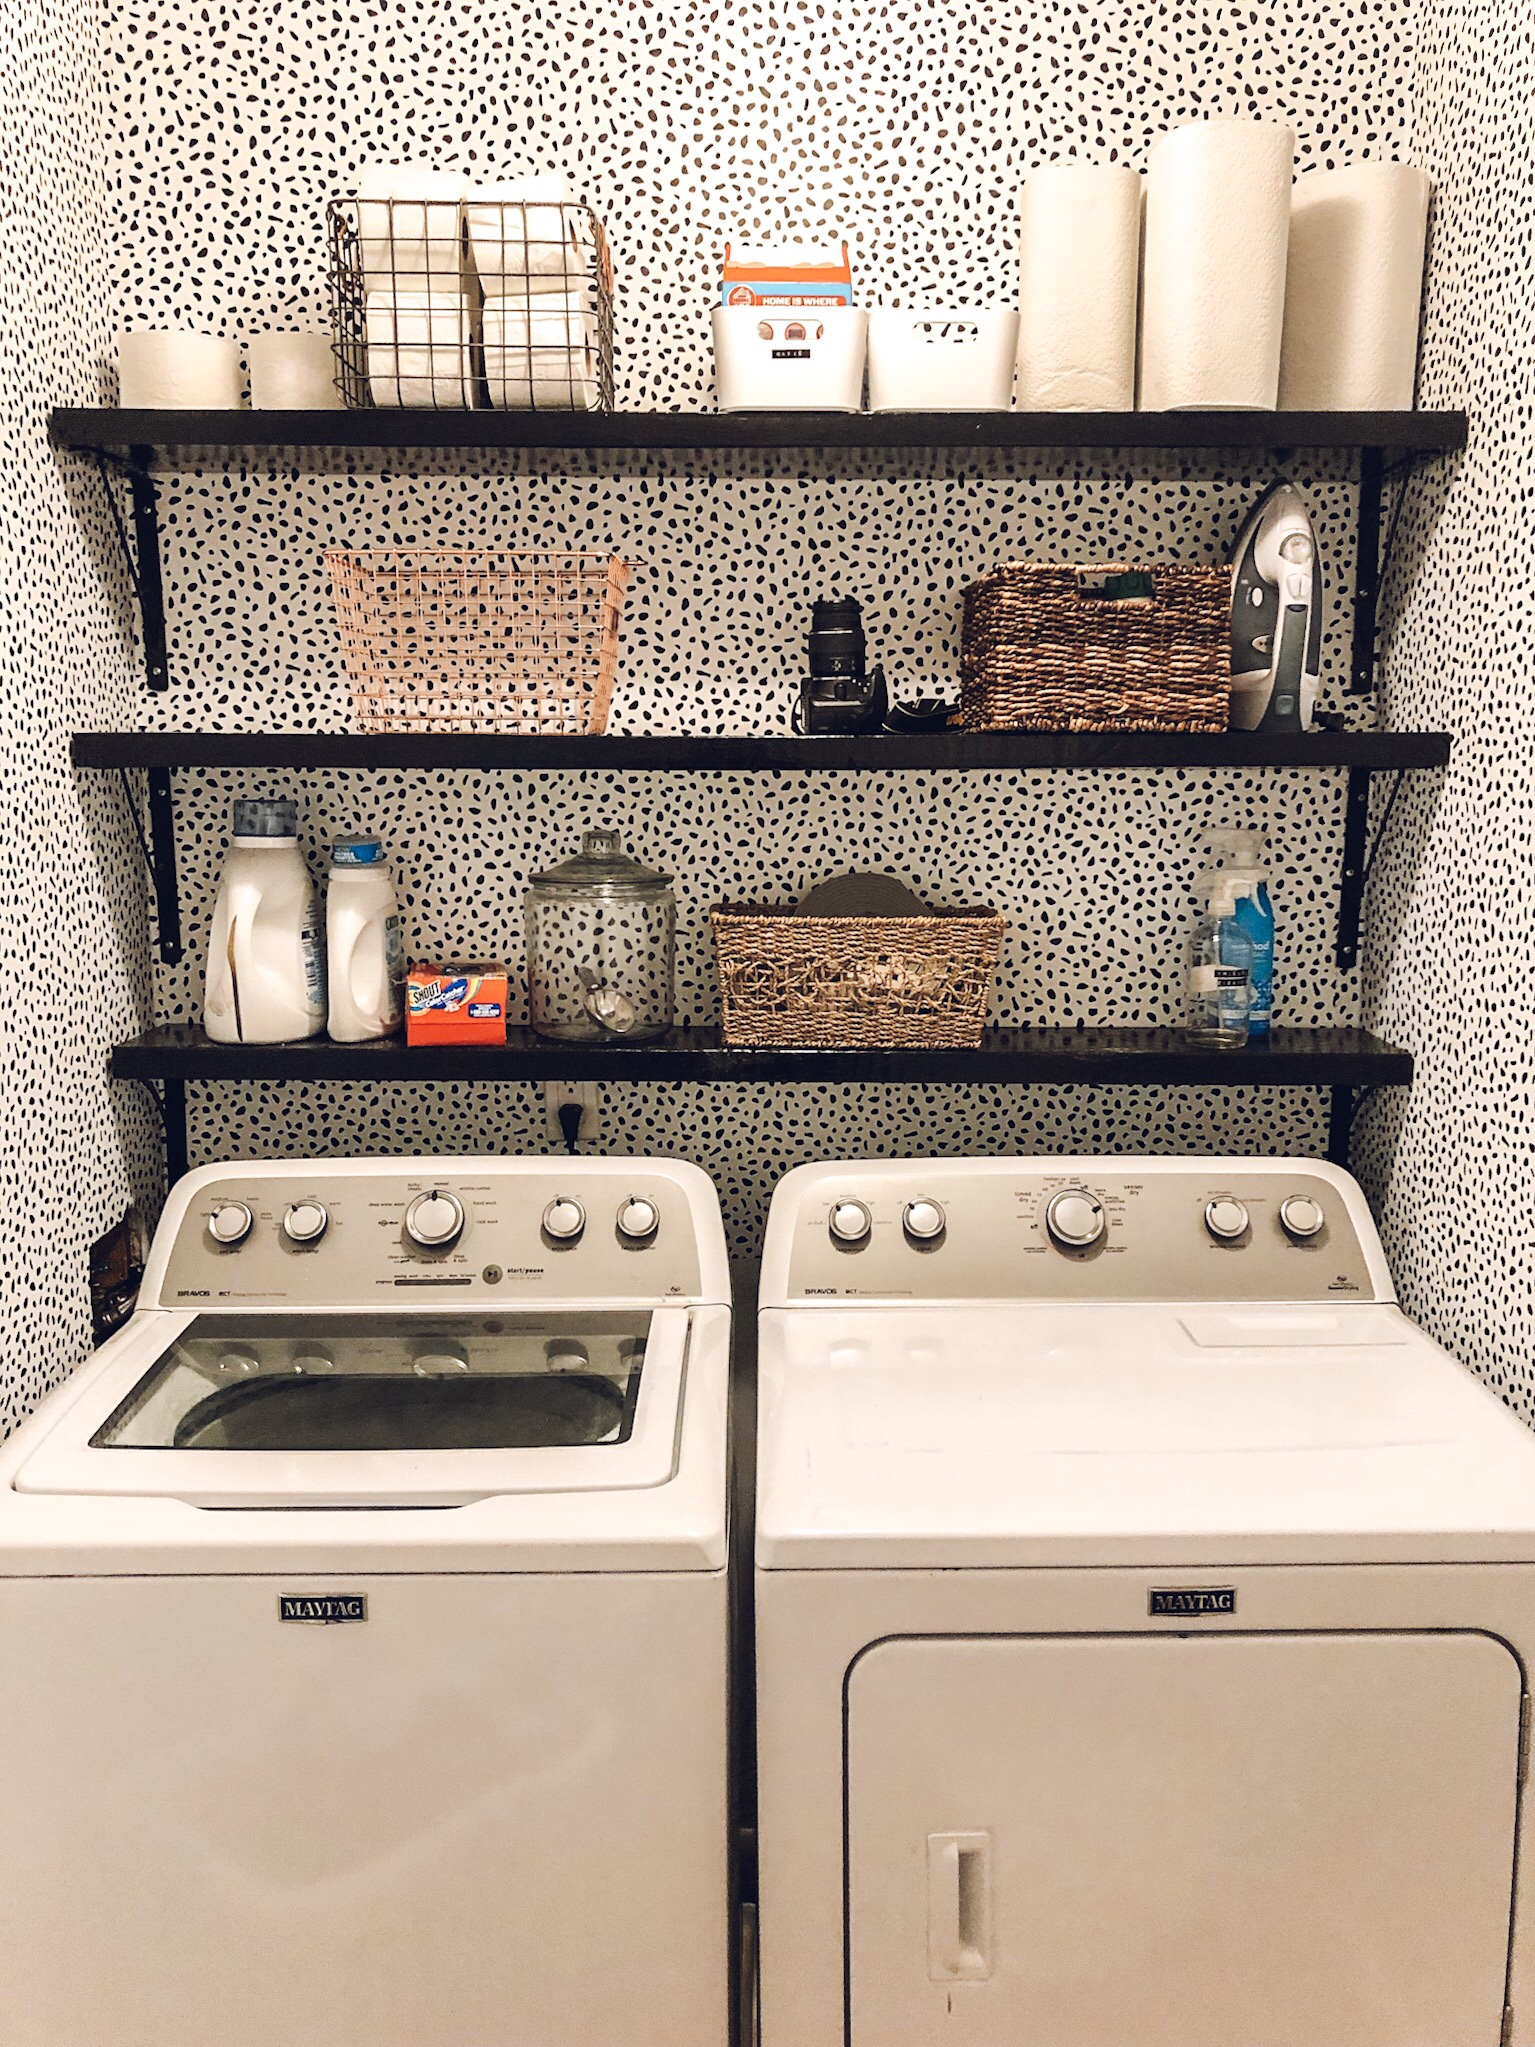 Laundry Room after / one delightful creative